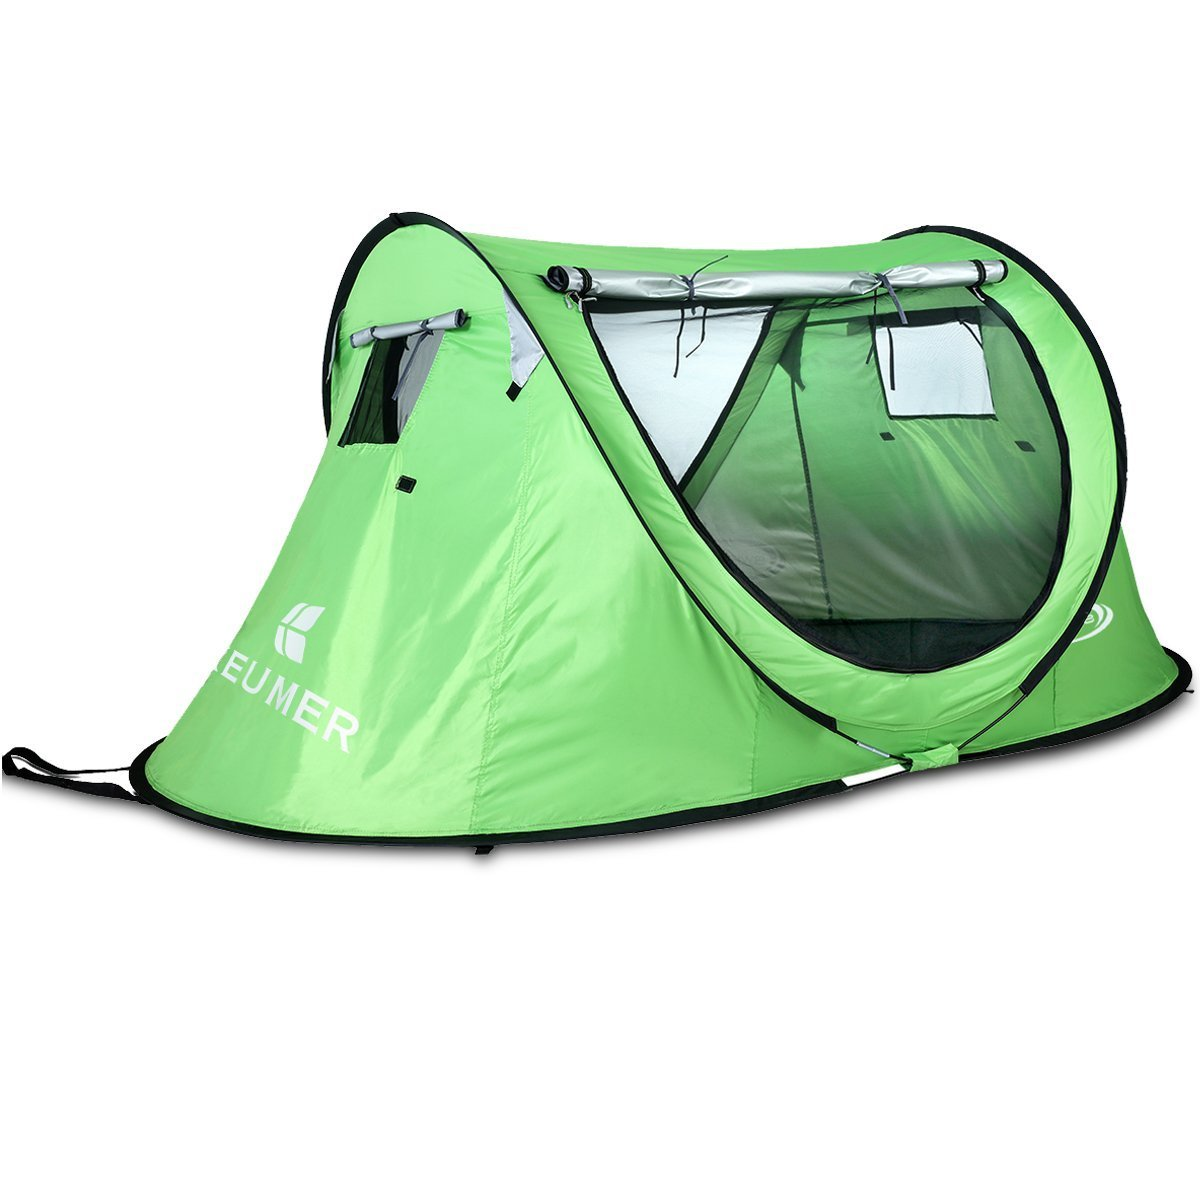 ... Pop Up C&ing Tent for 2 Person Automatic Instant Setup wi ...  sc 1 st  Monobeach & Pop Up Camping Tent for 2 Person Automatic Instant Setup with ...